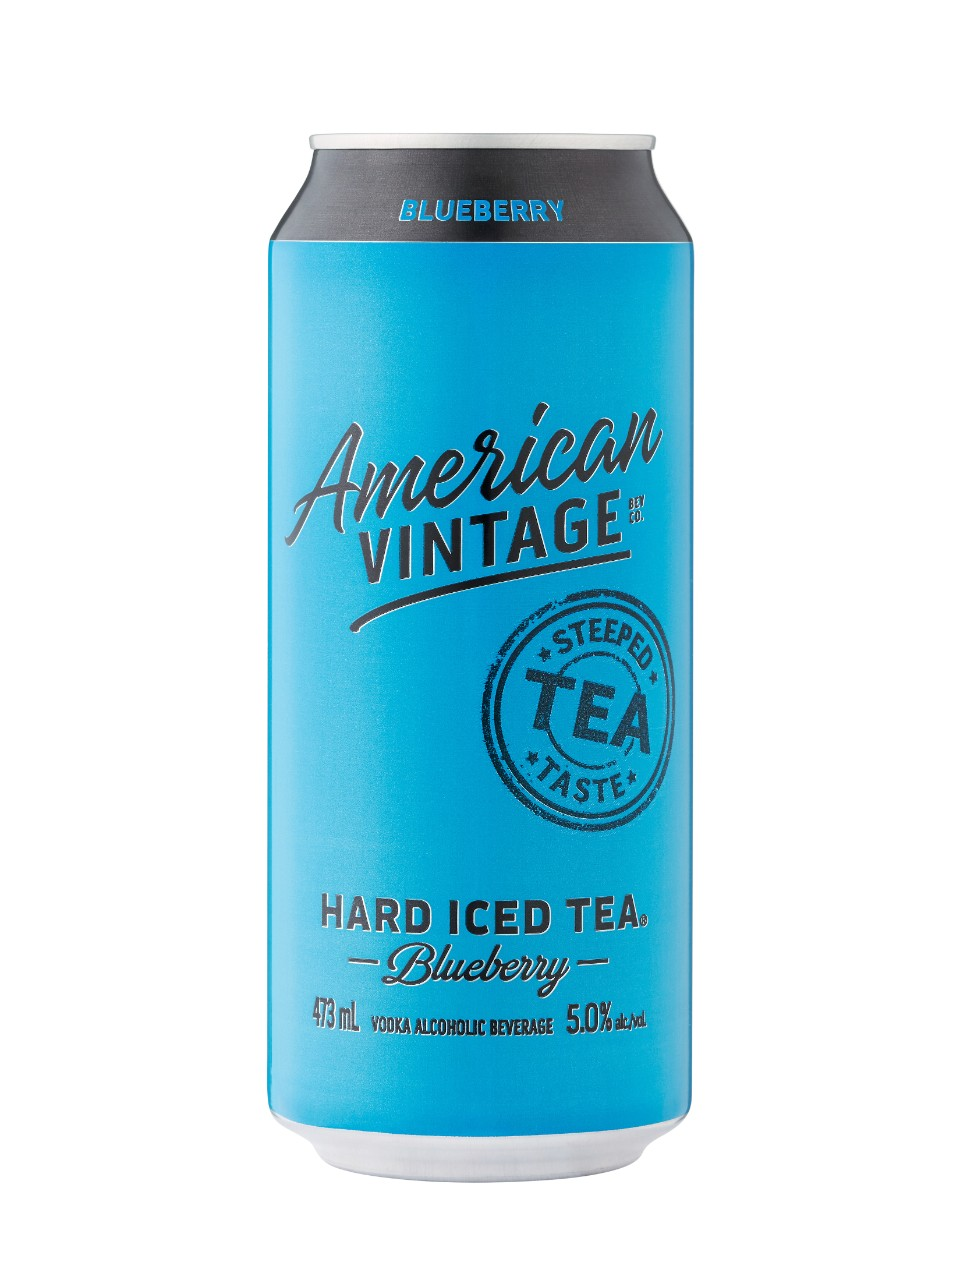 American Vintage Blueberry Lcbo